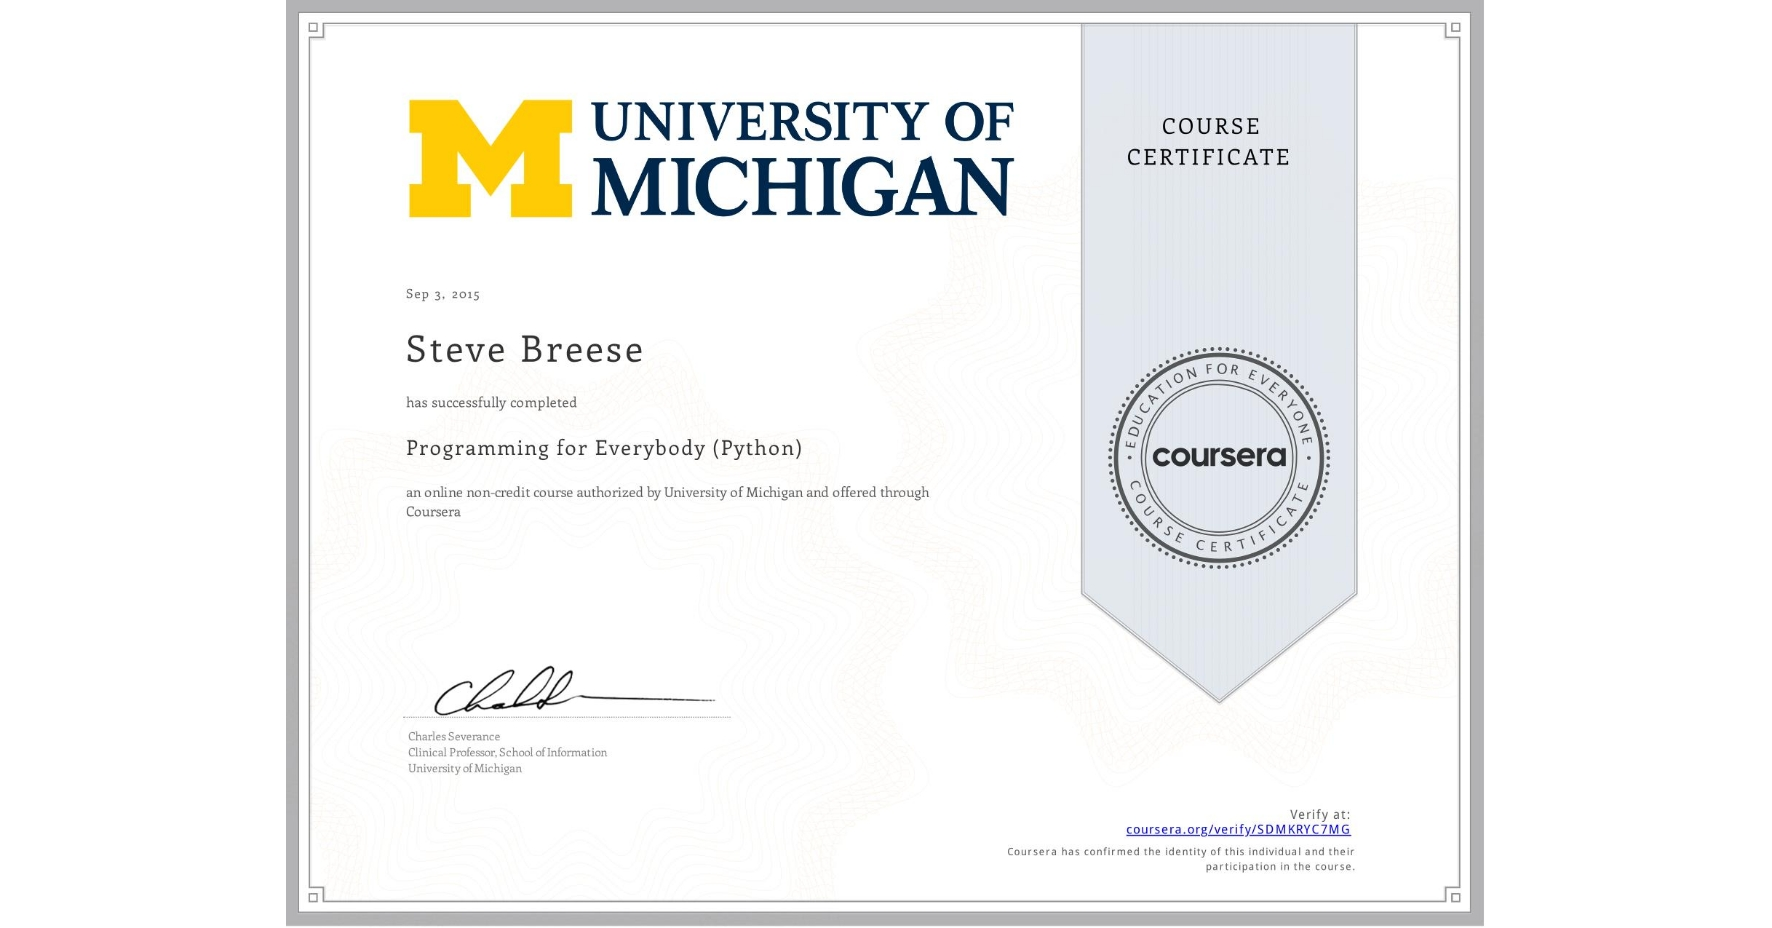 View certificate for Steve Breese, Programming for Everybody (Python), an online non-credit course authorized by University of Michigan and offered through Coursera